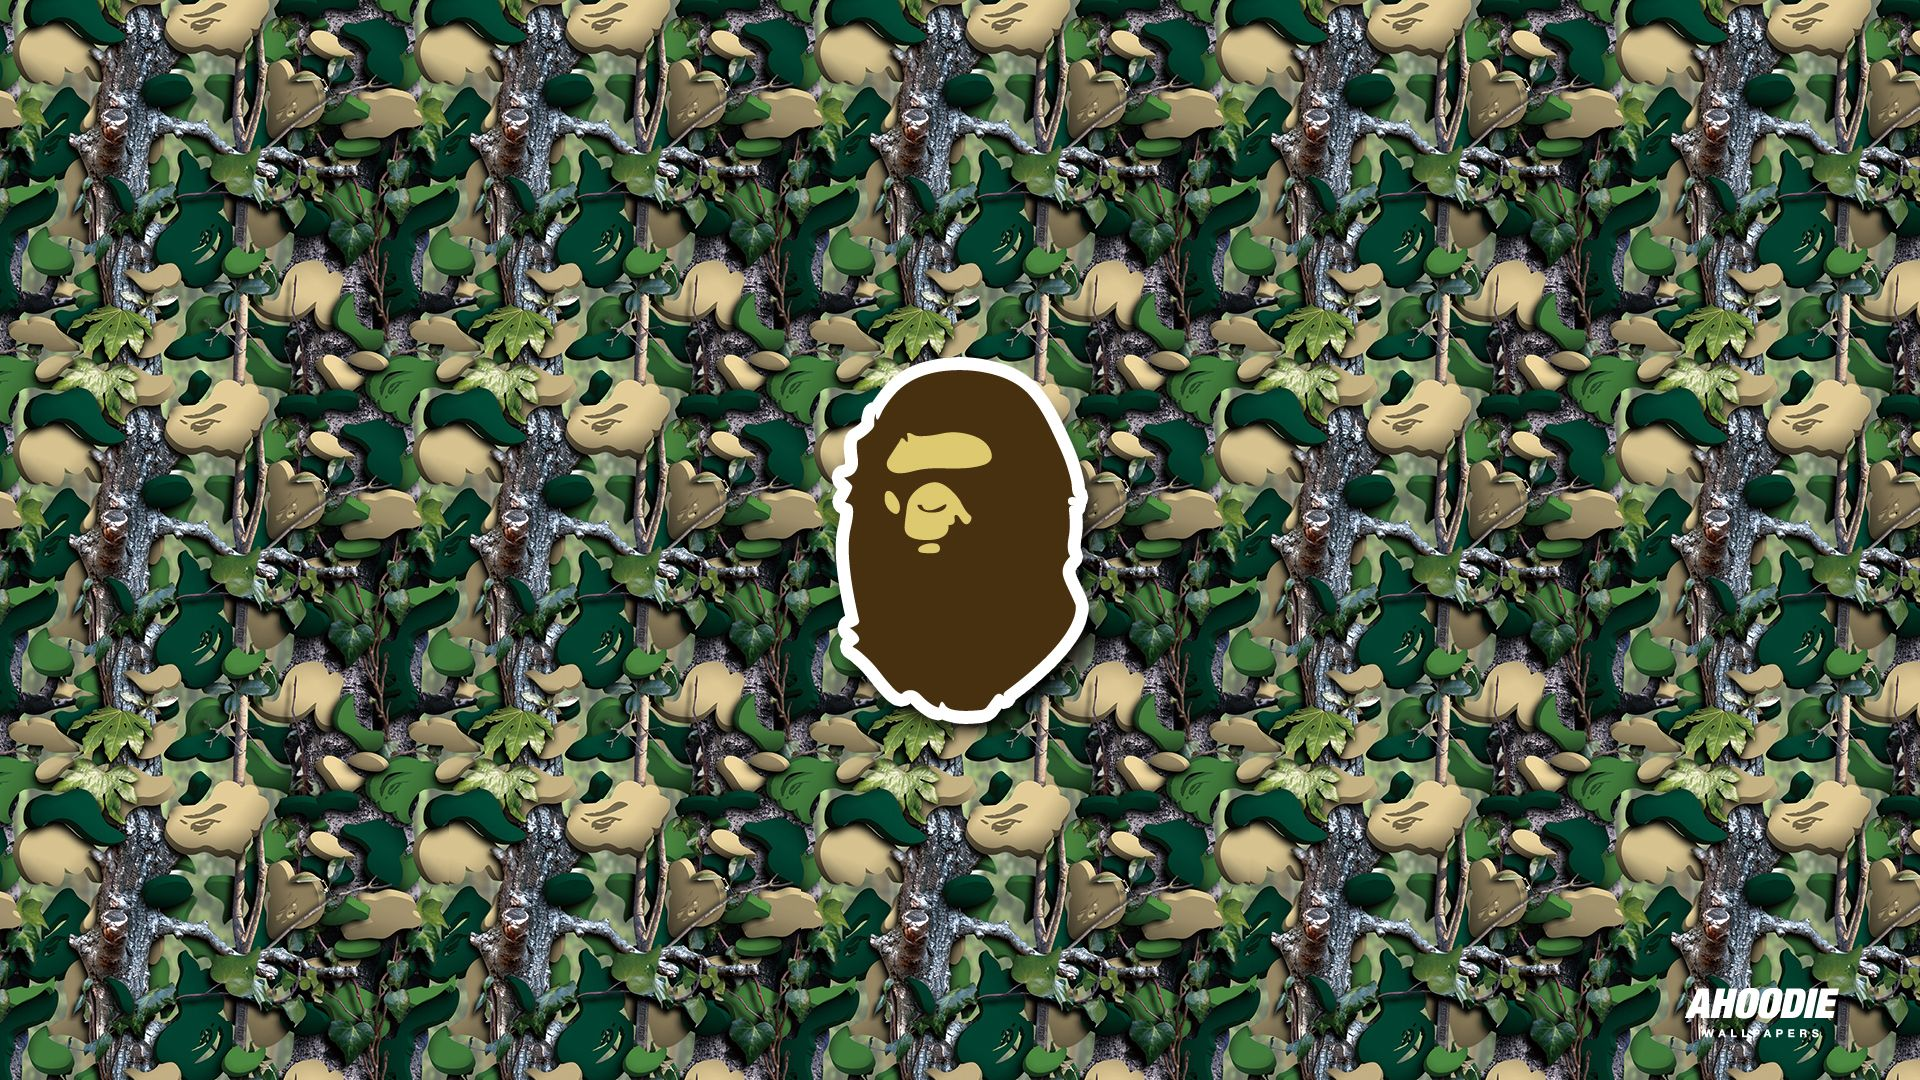 Download Wallpaper High Quality Bape - 1385e0daf3bc4997c7bb81e6ad29b116  Collection_475858.jpg